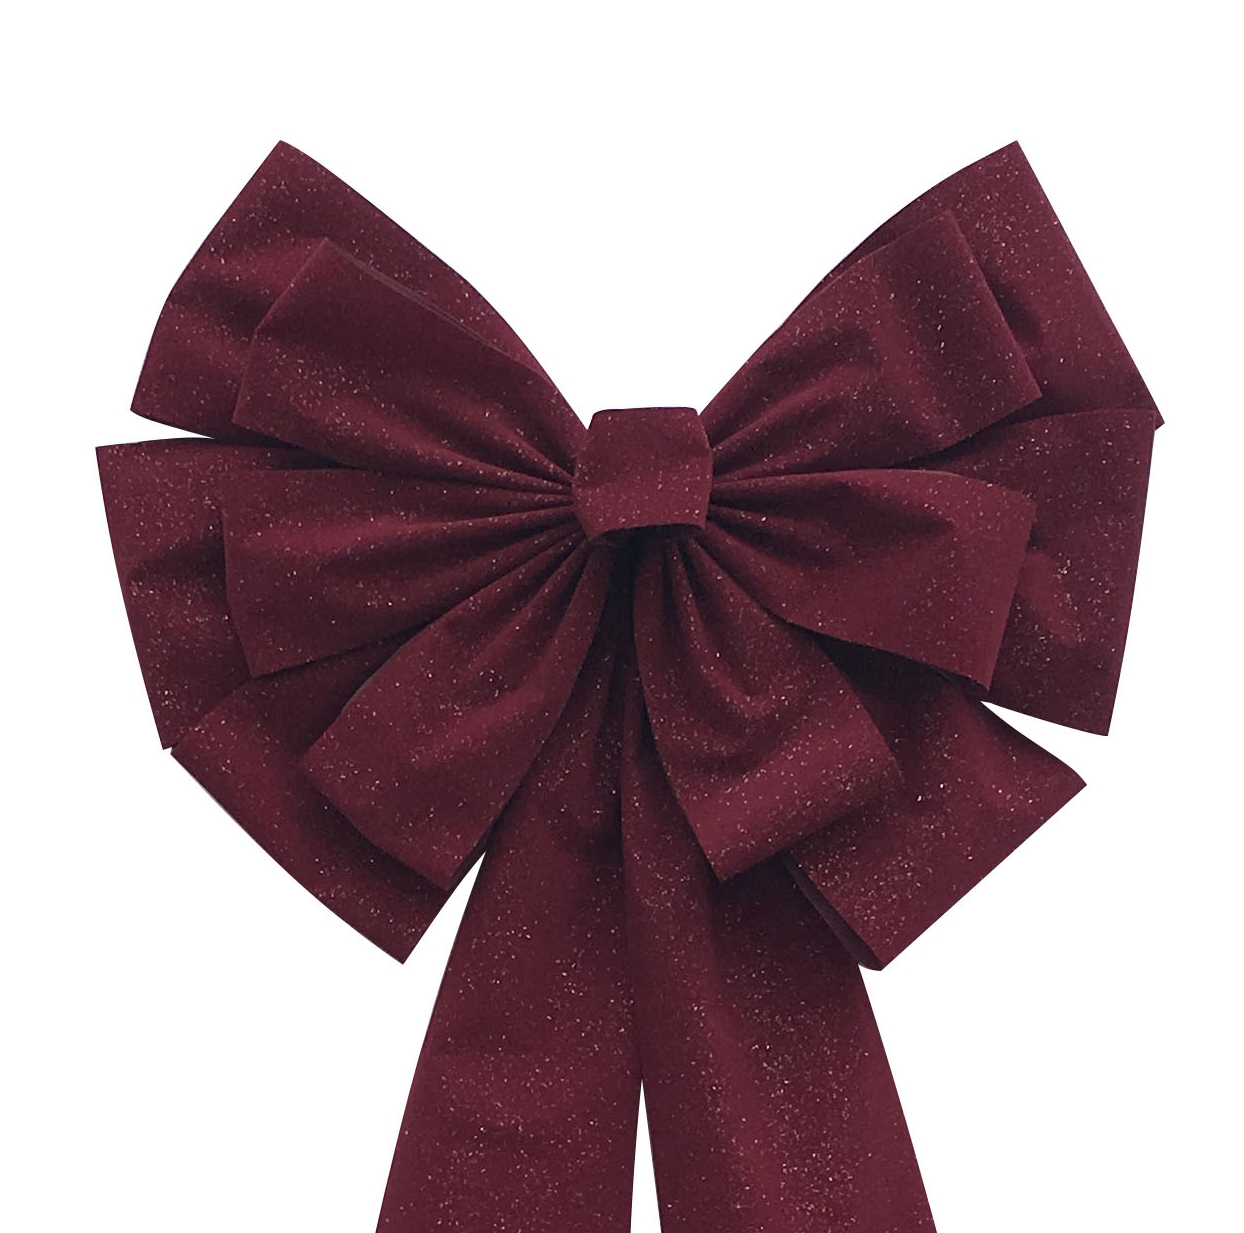 Burgundy Christmas bows for wreaths